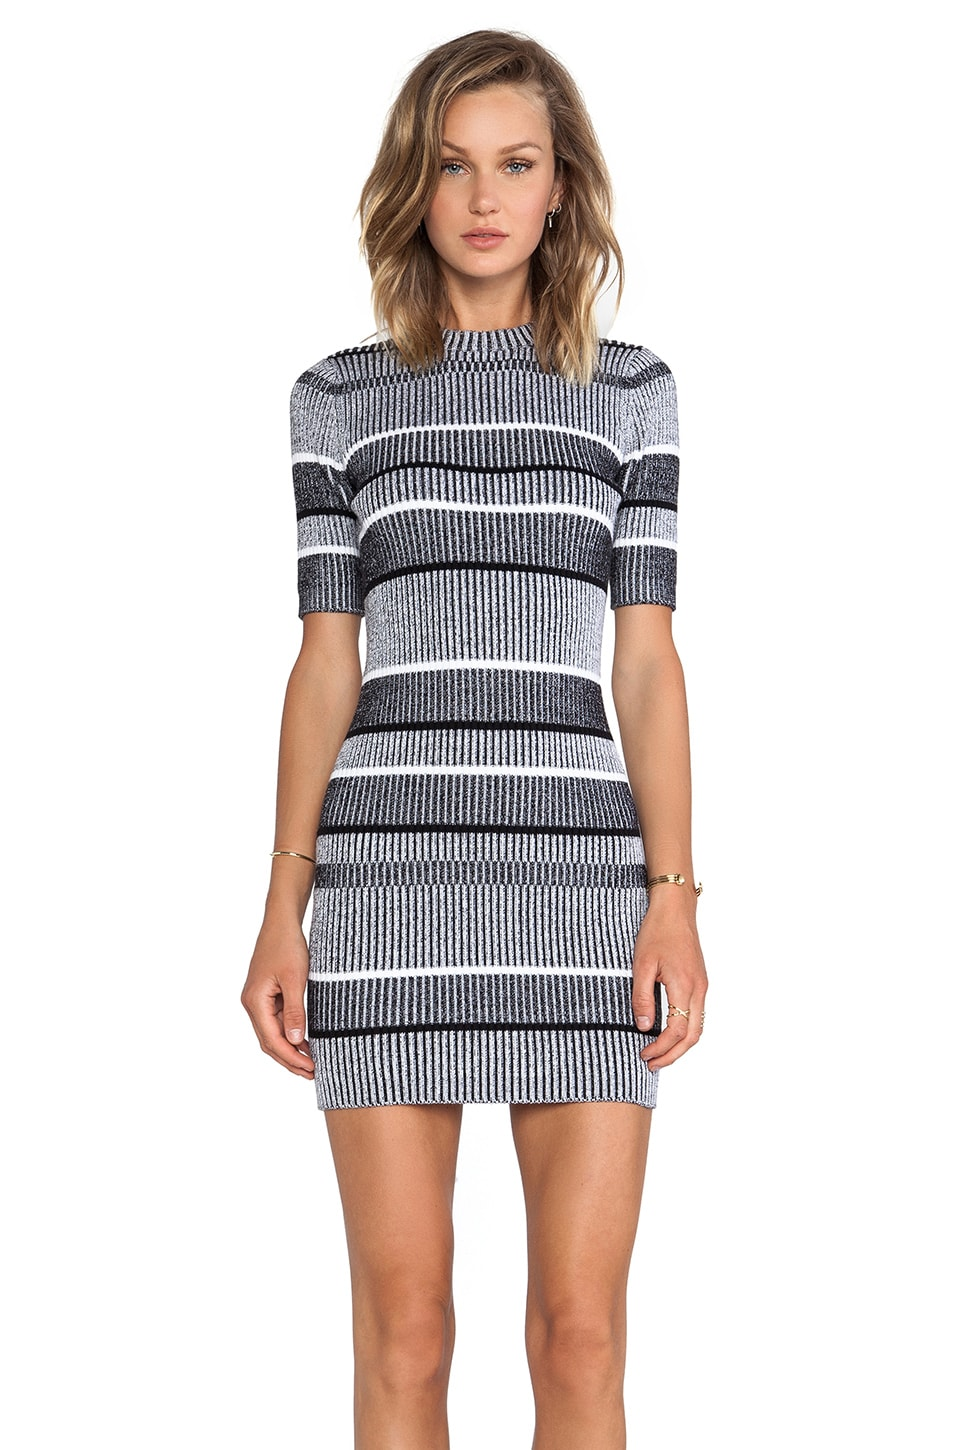 T by Alexander Wang Rib Knit Short Sleeve Dress in Black